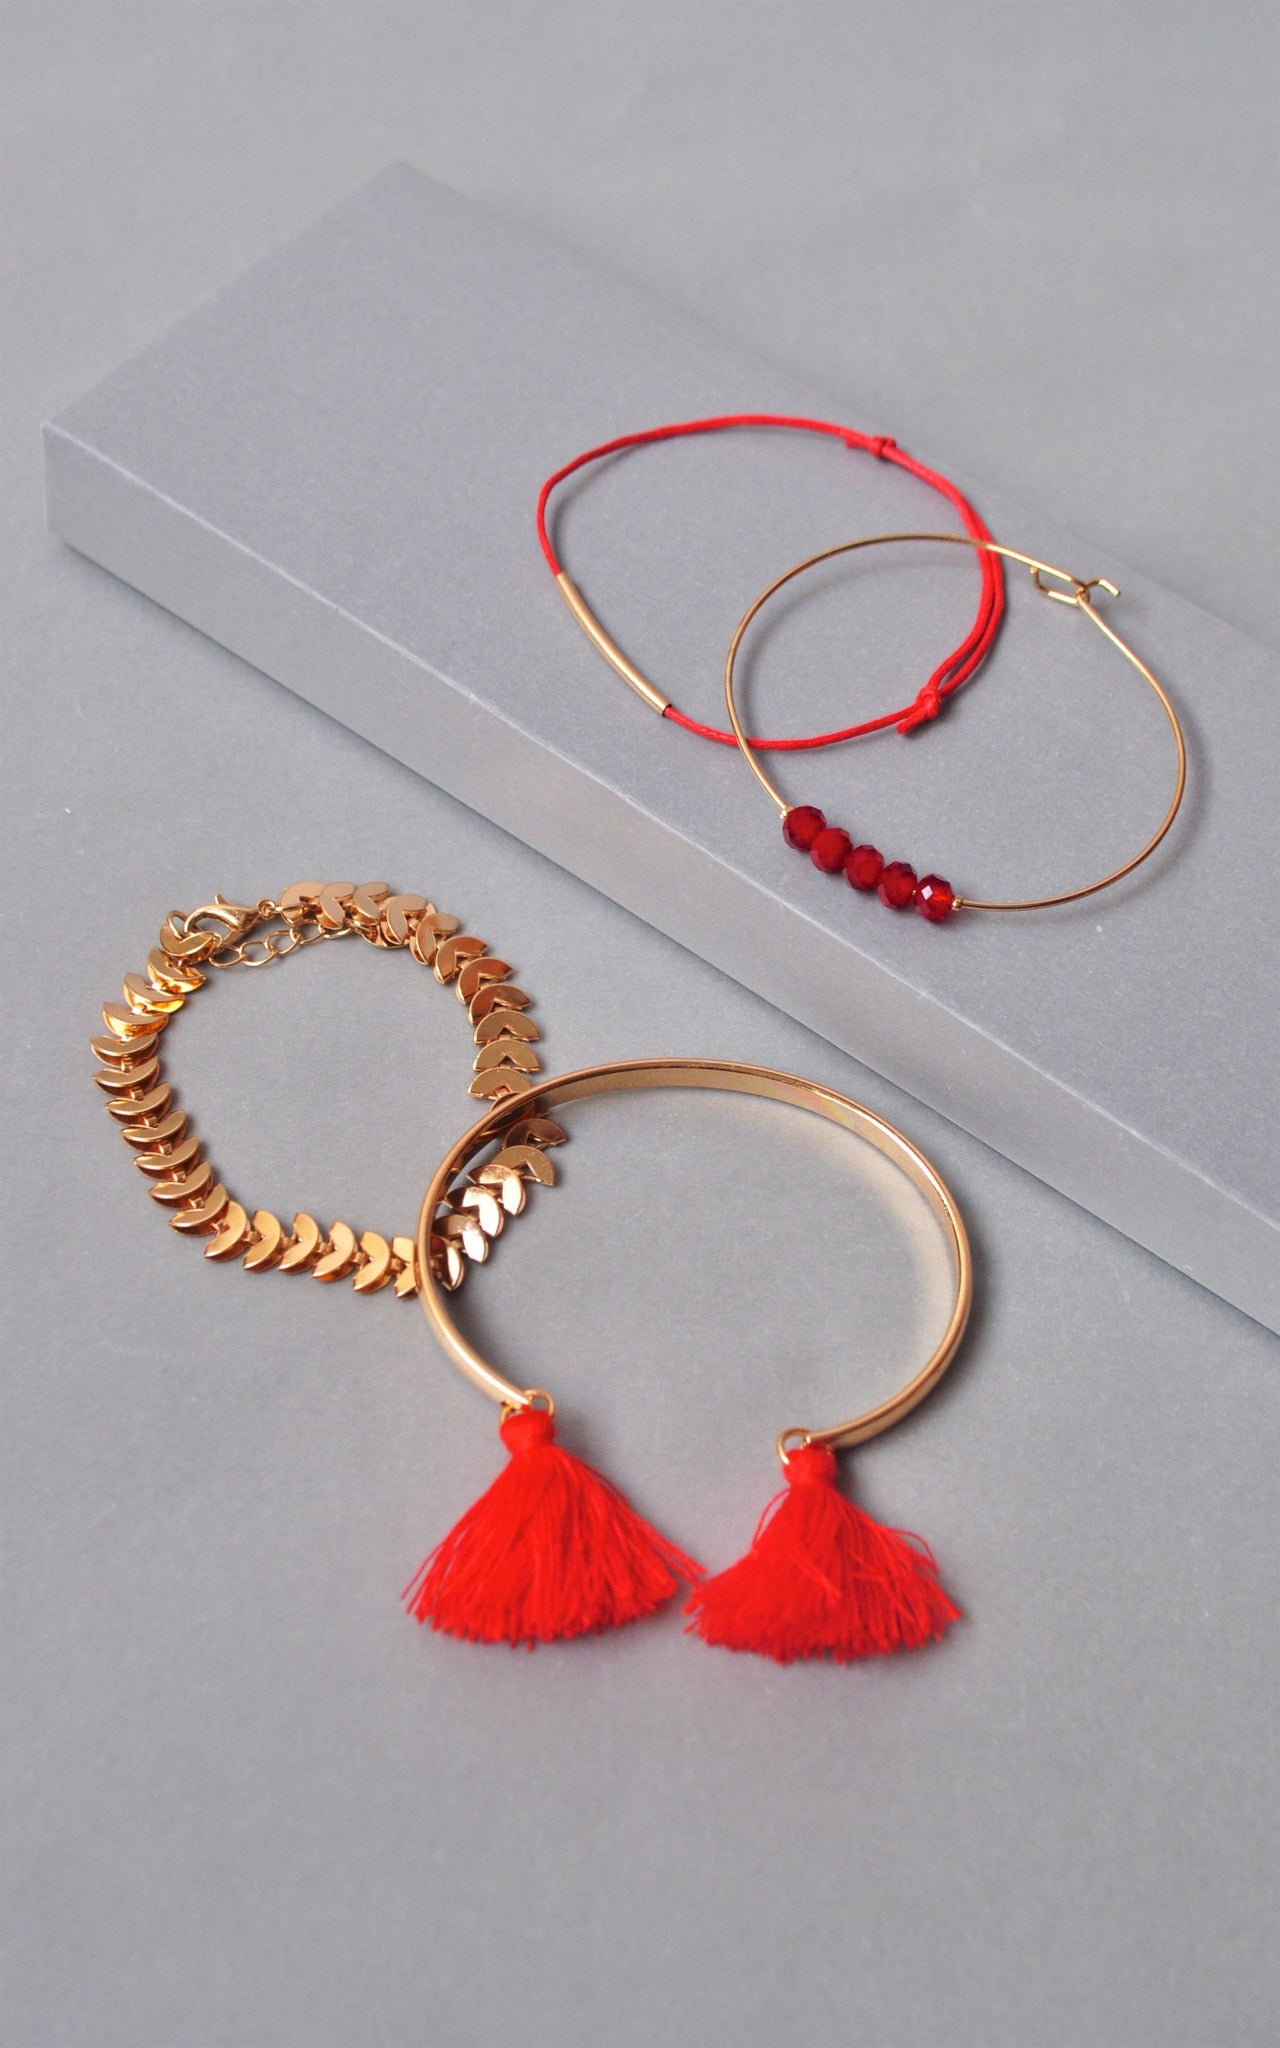 uncategorized dress font bracelet red and b bracelets new gold images plated yellow